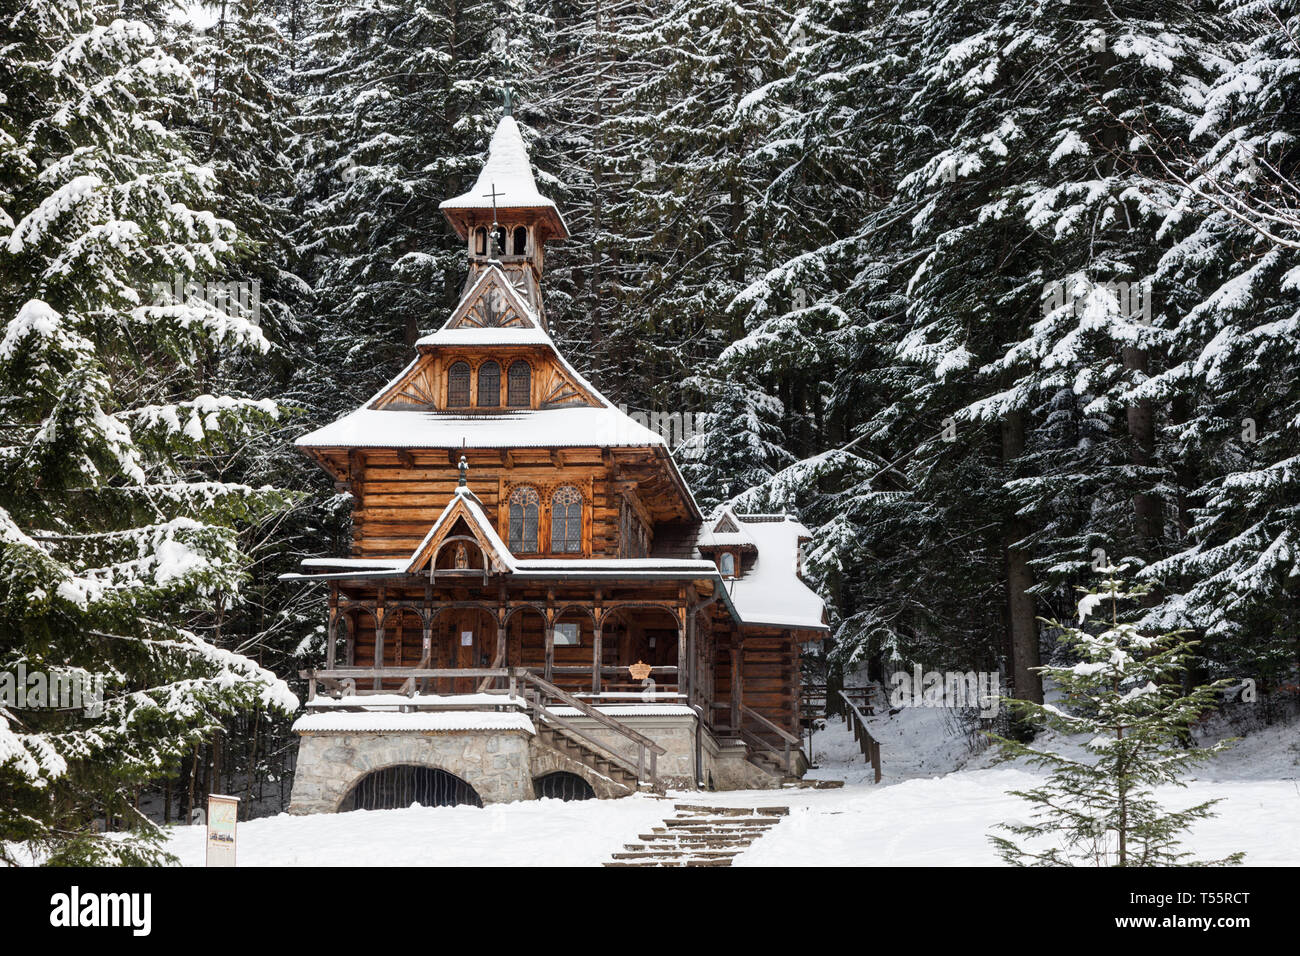 Chapel of the Sacred Heart of Jesus in snow in Jaszczurowka, Poland - Stock Image